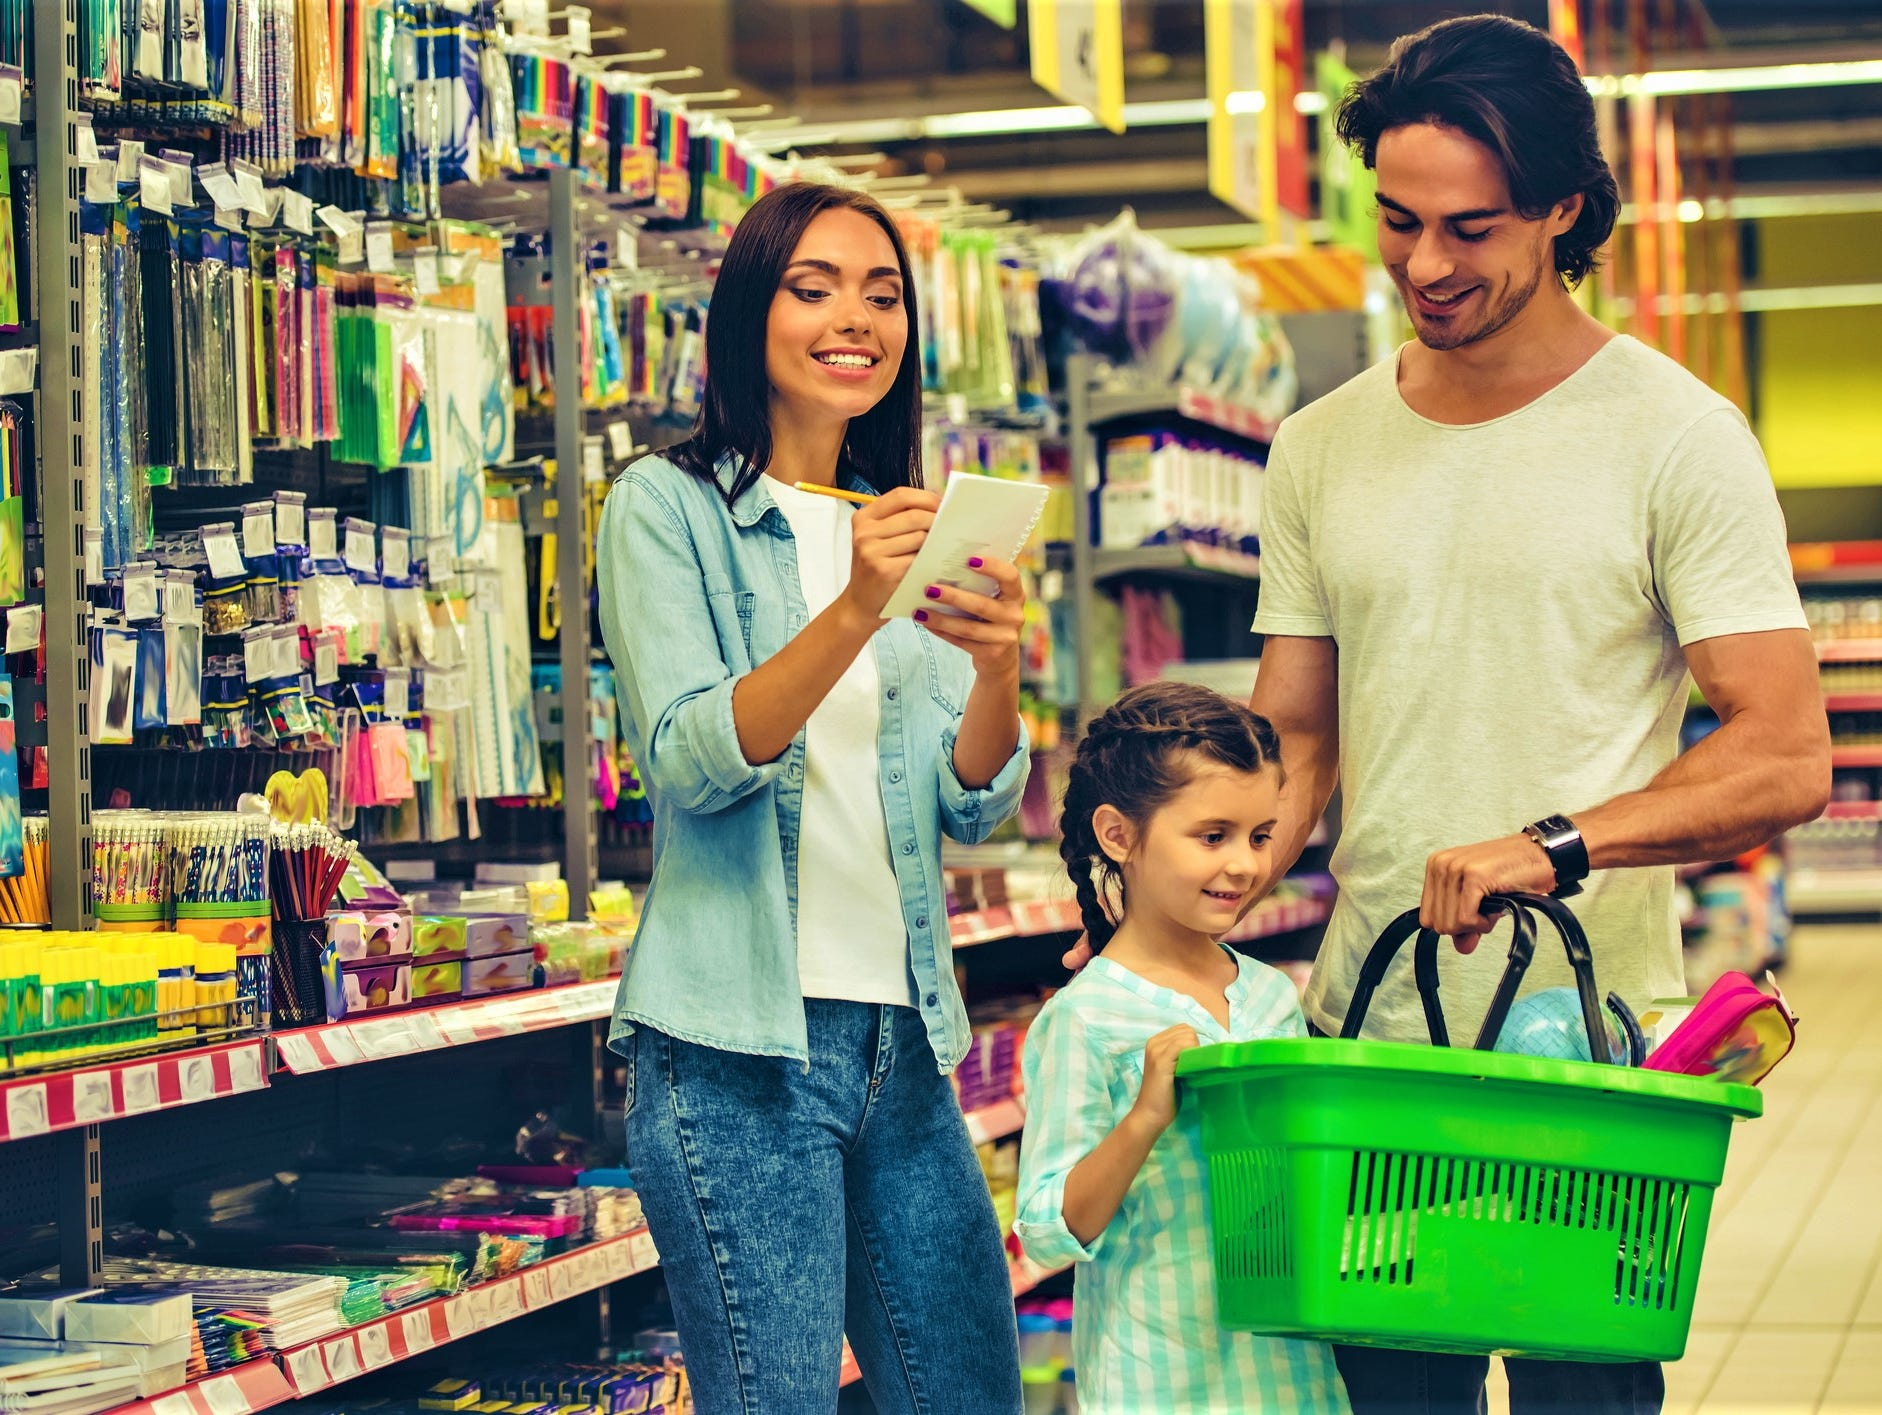 Student or not, learn how savvy shoppers can bank on finding some great deals this back-to-school season!